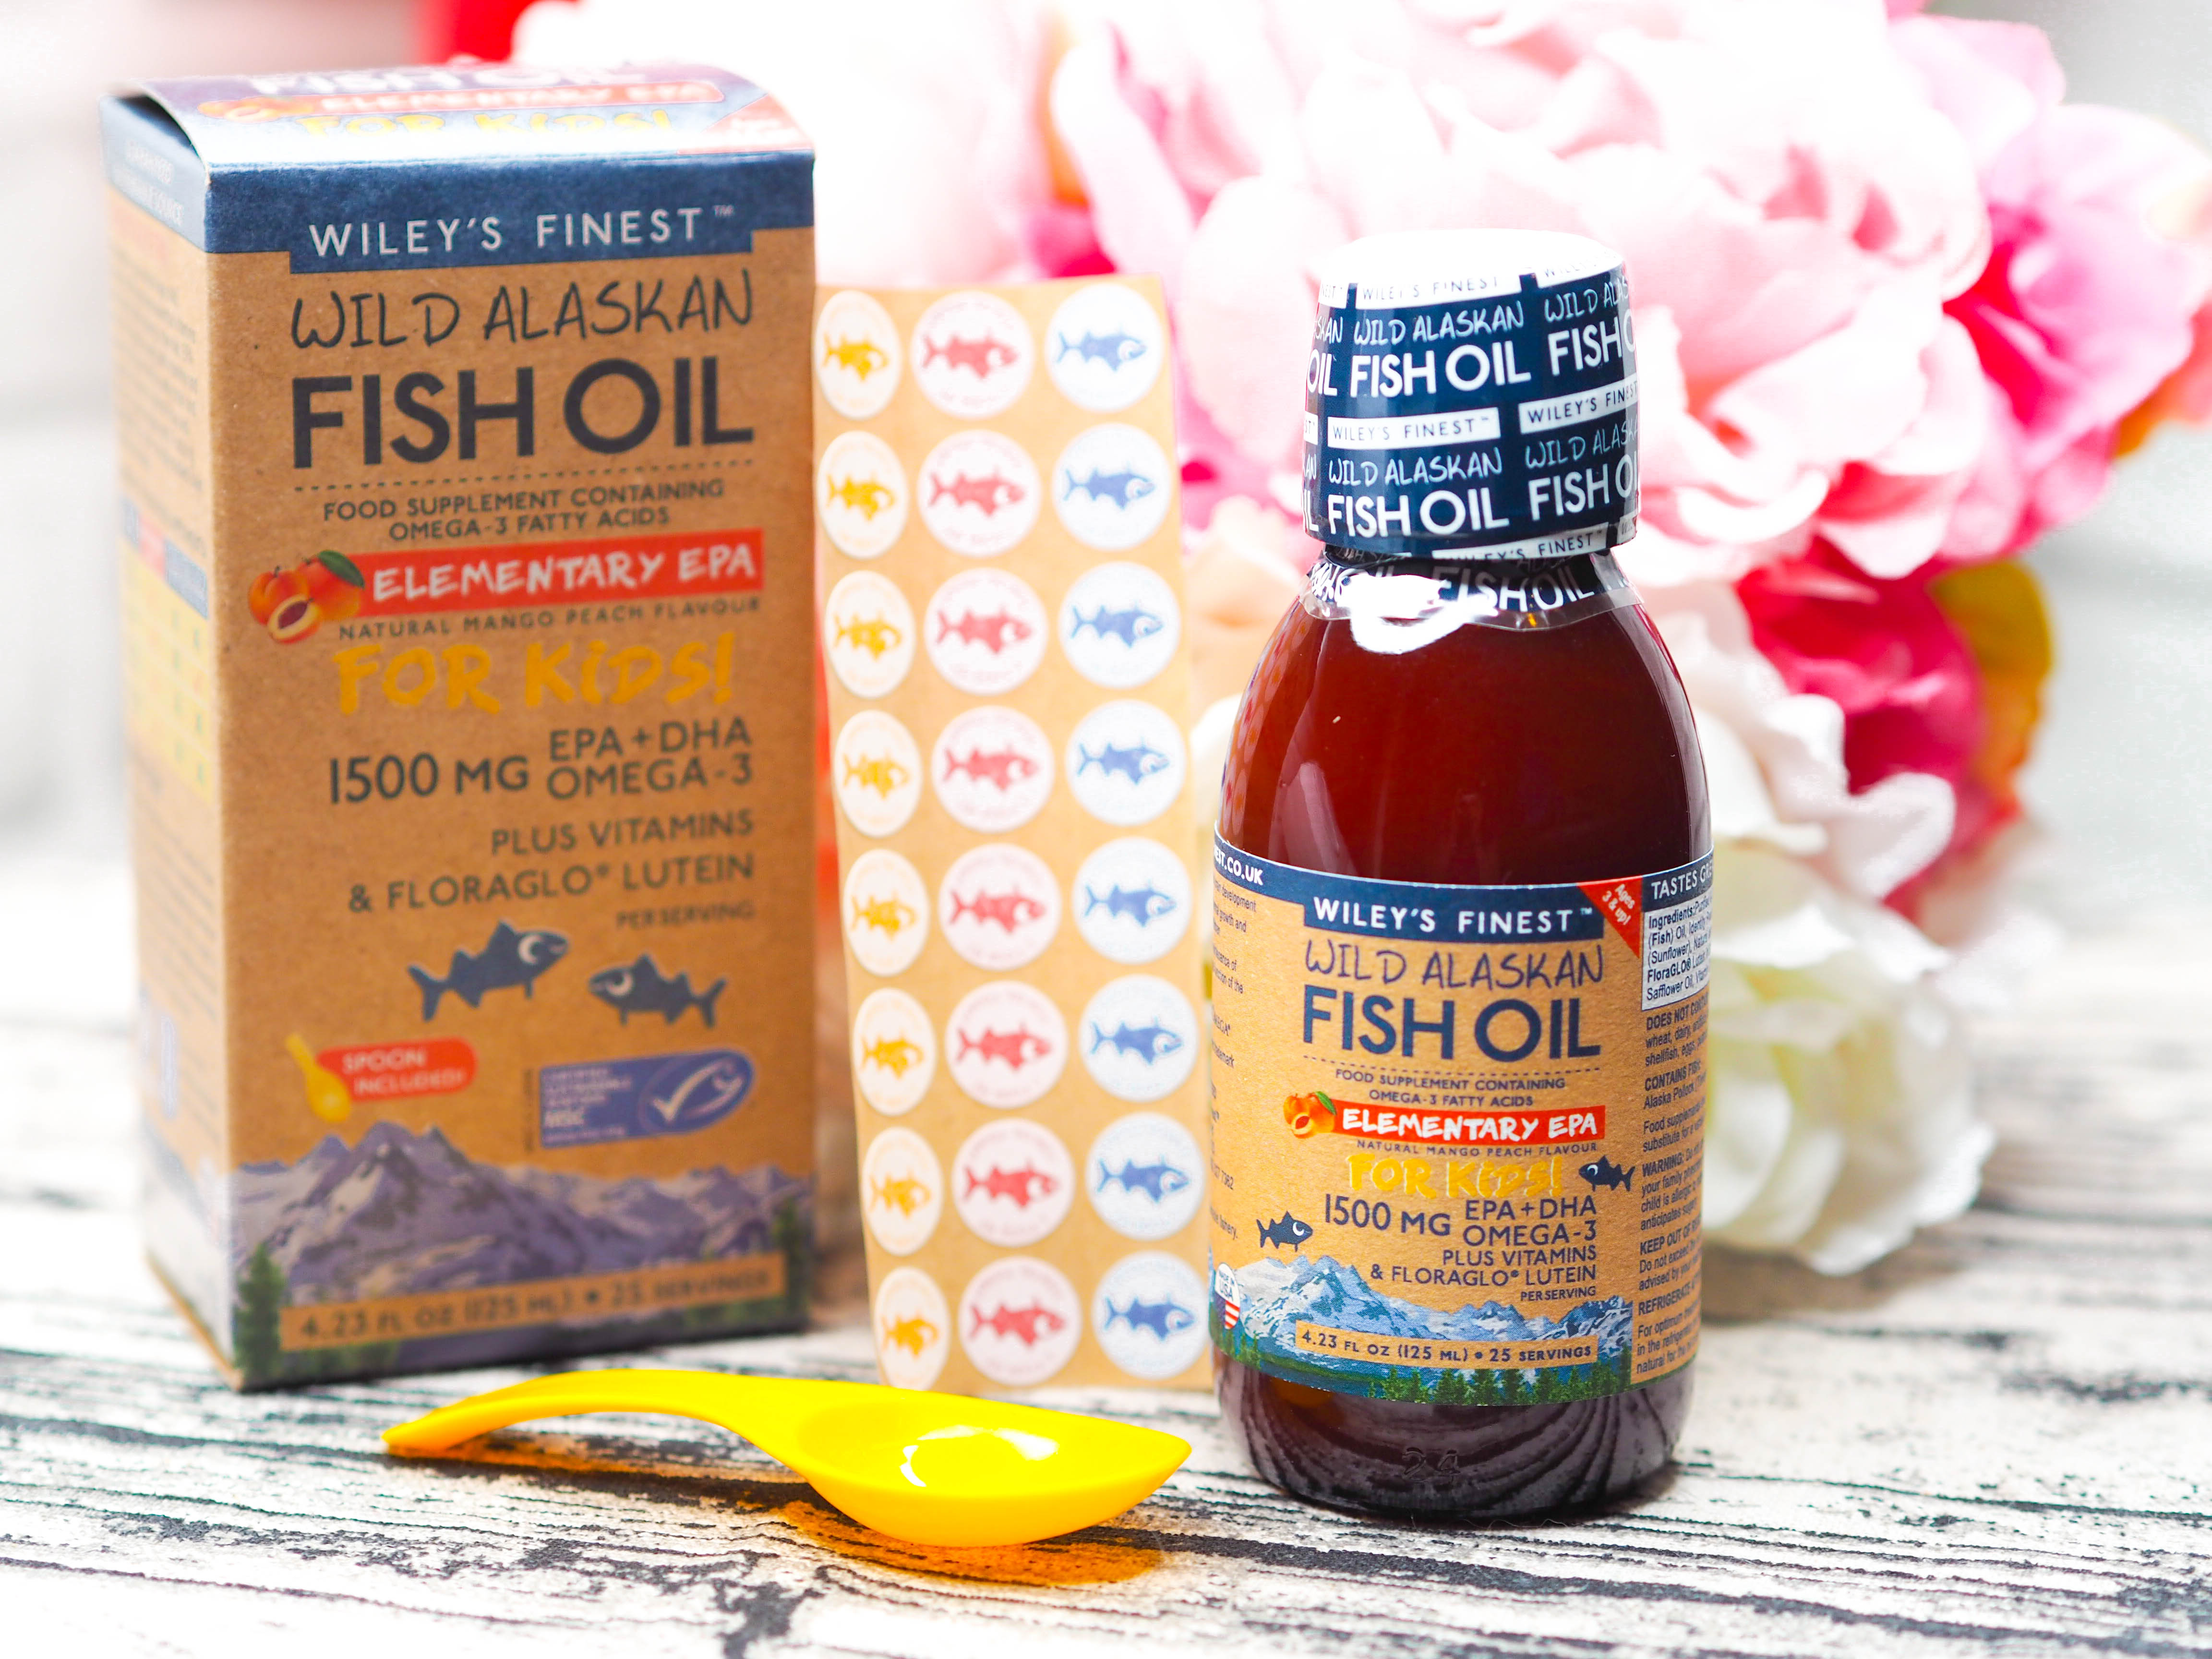 Wiley's Finest Beginner's DHA Wild Alaskan Fish Oil for Children